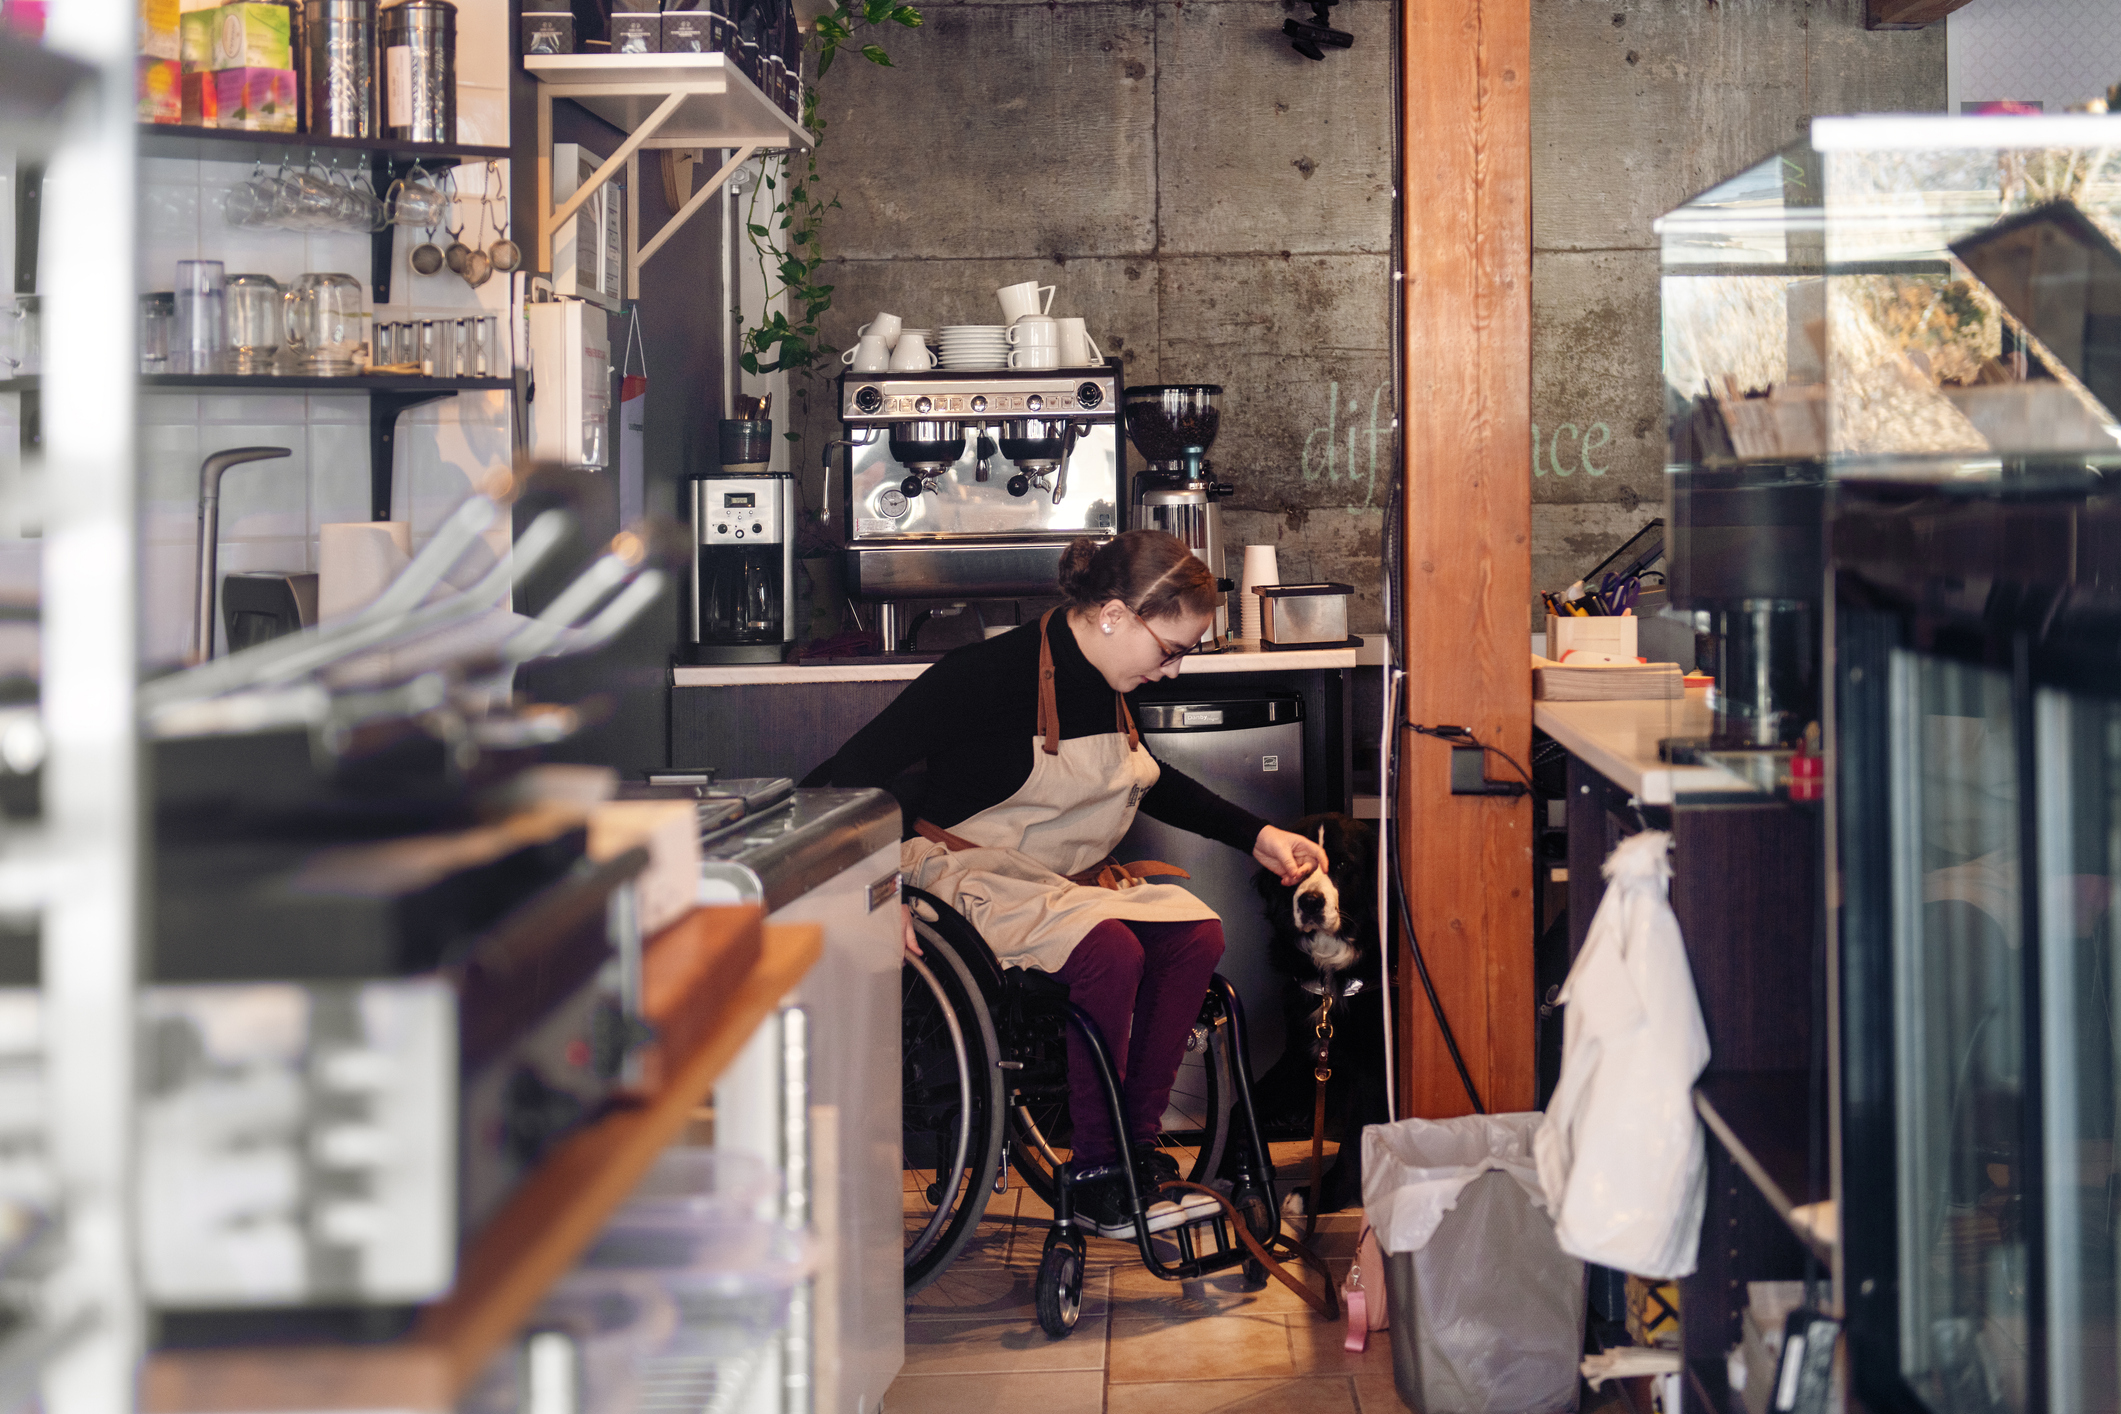 Disabled woman working in bakery cafe